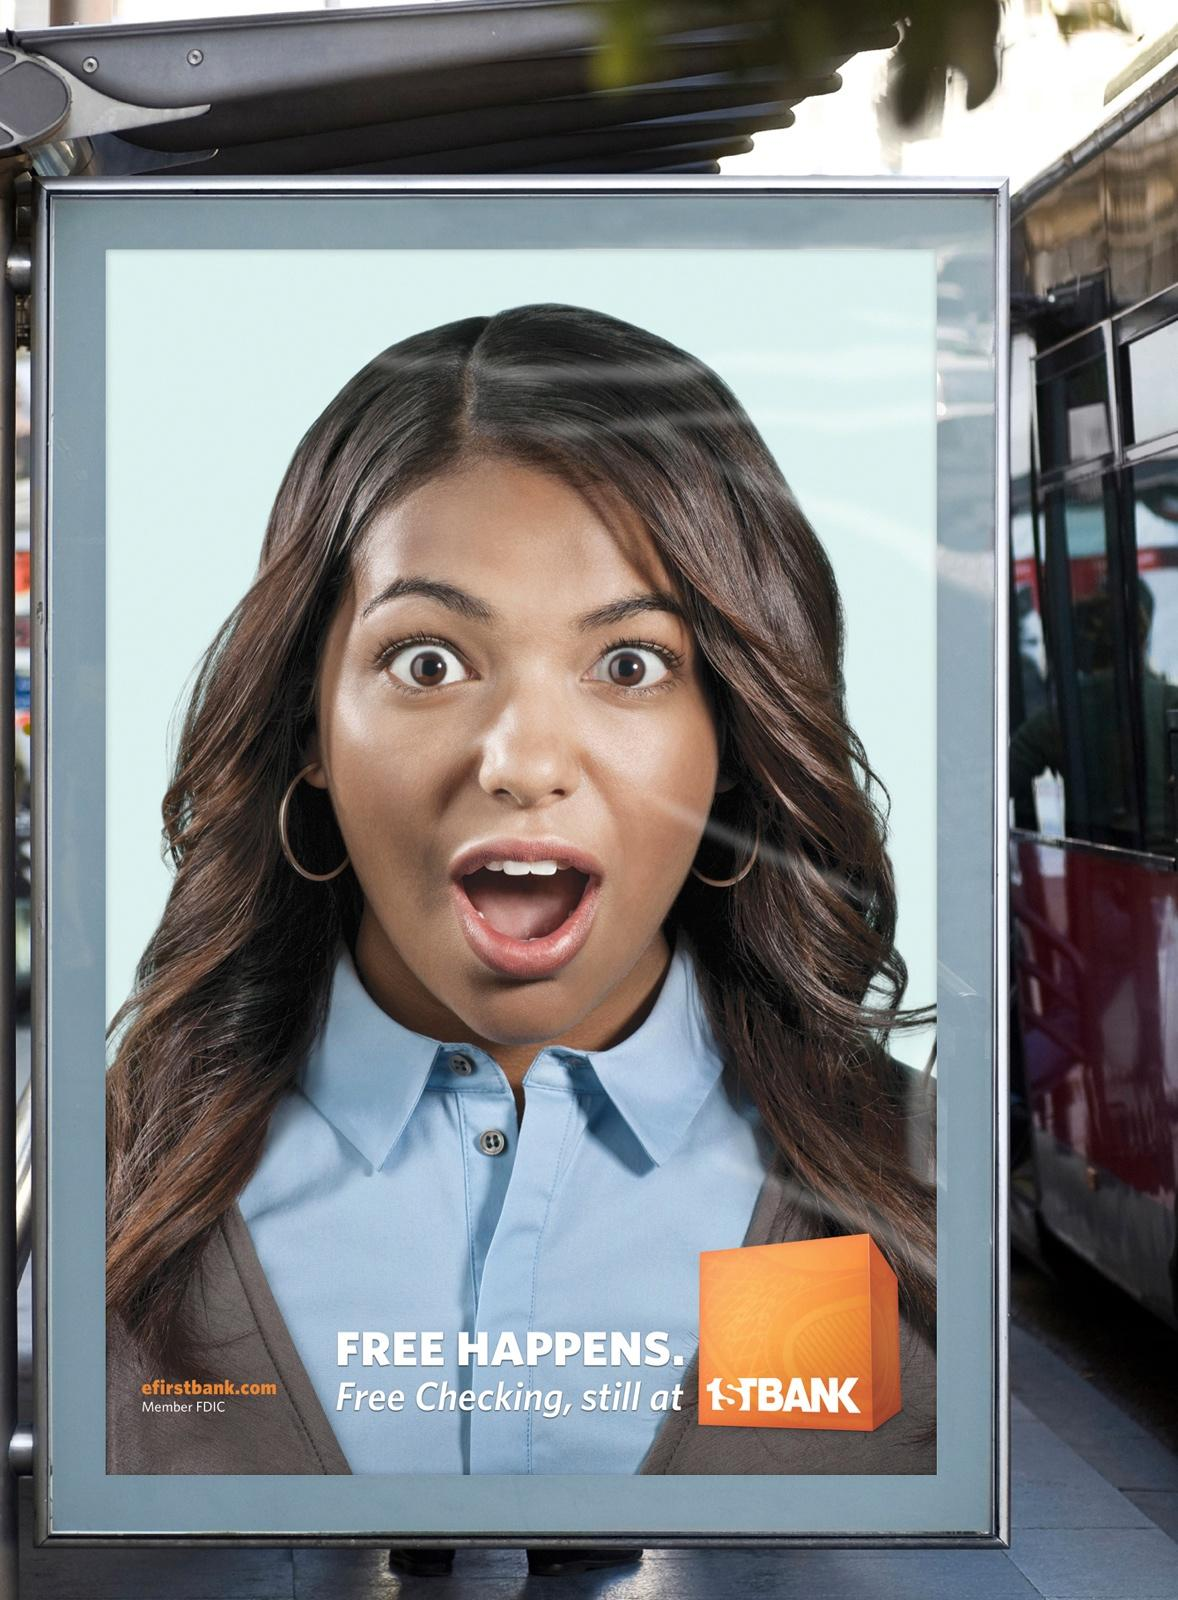 FirstBank Outdoor Ad -  Restore your faith in free, Ashley